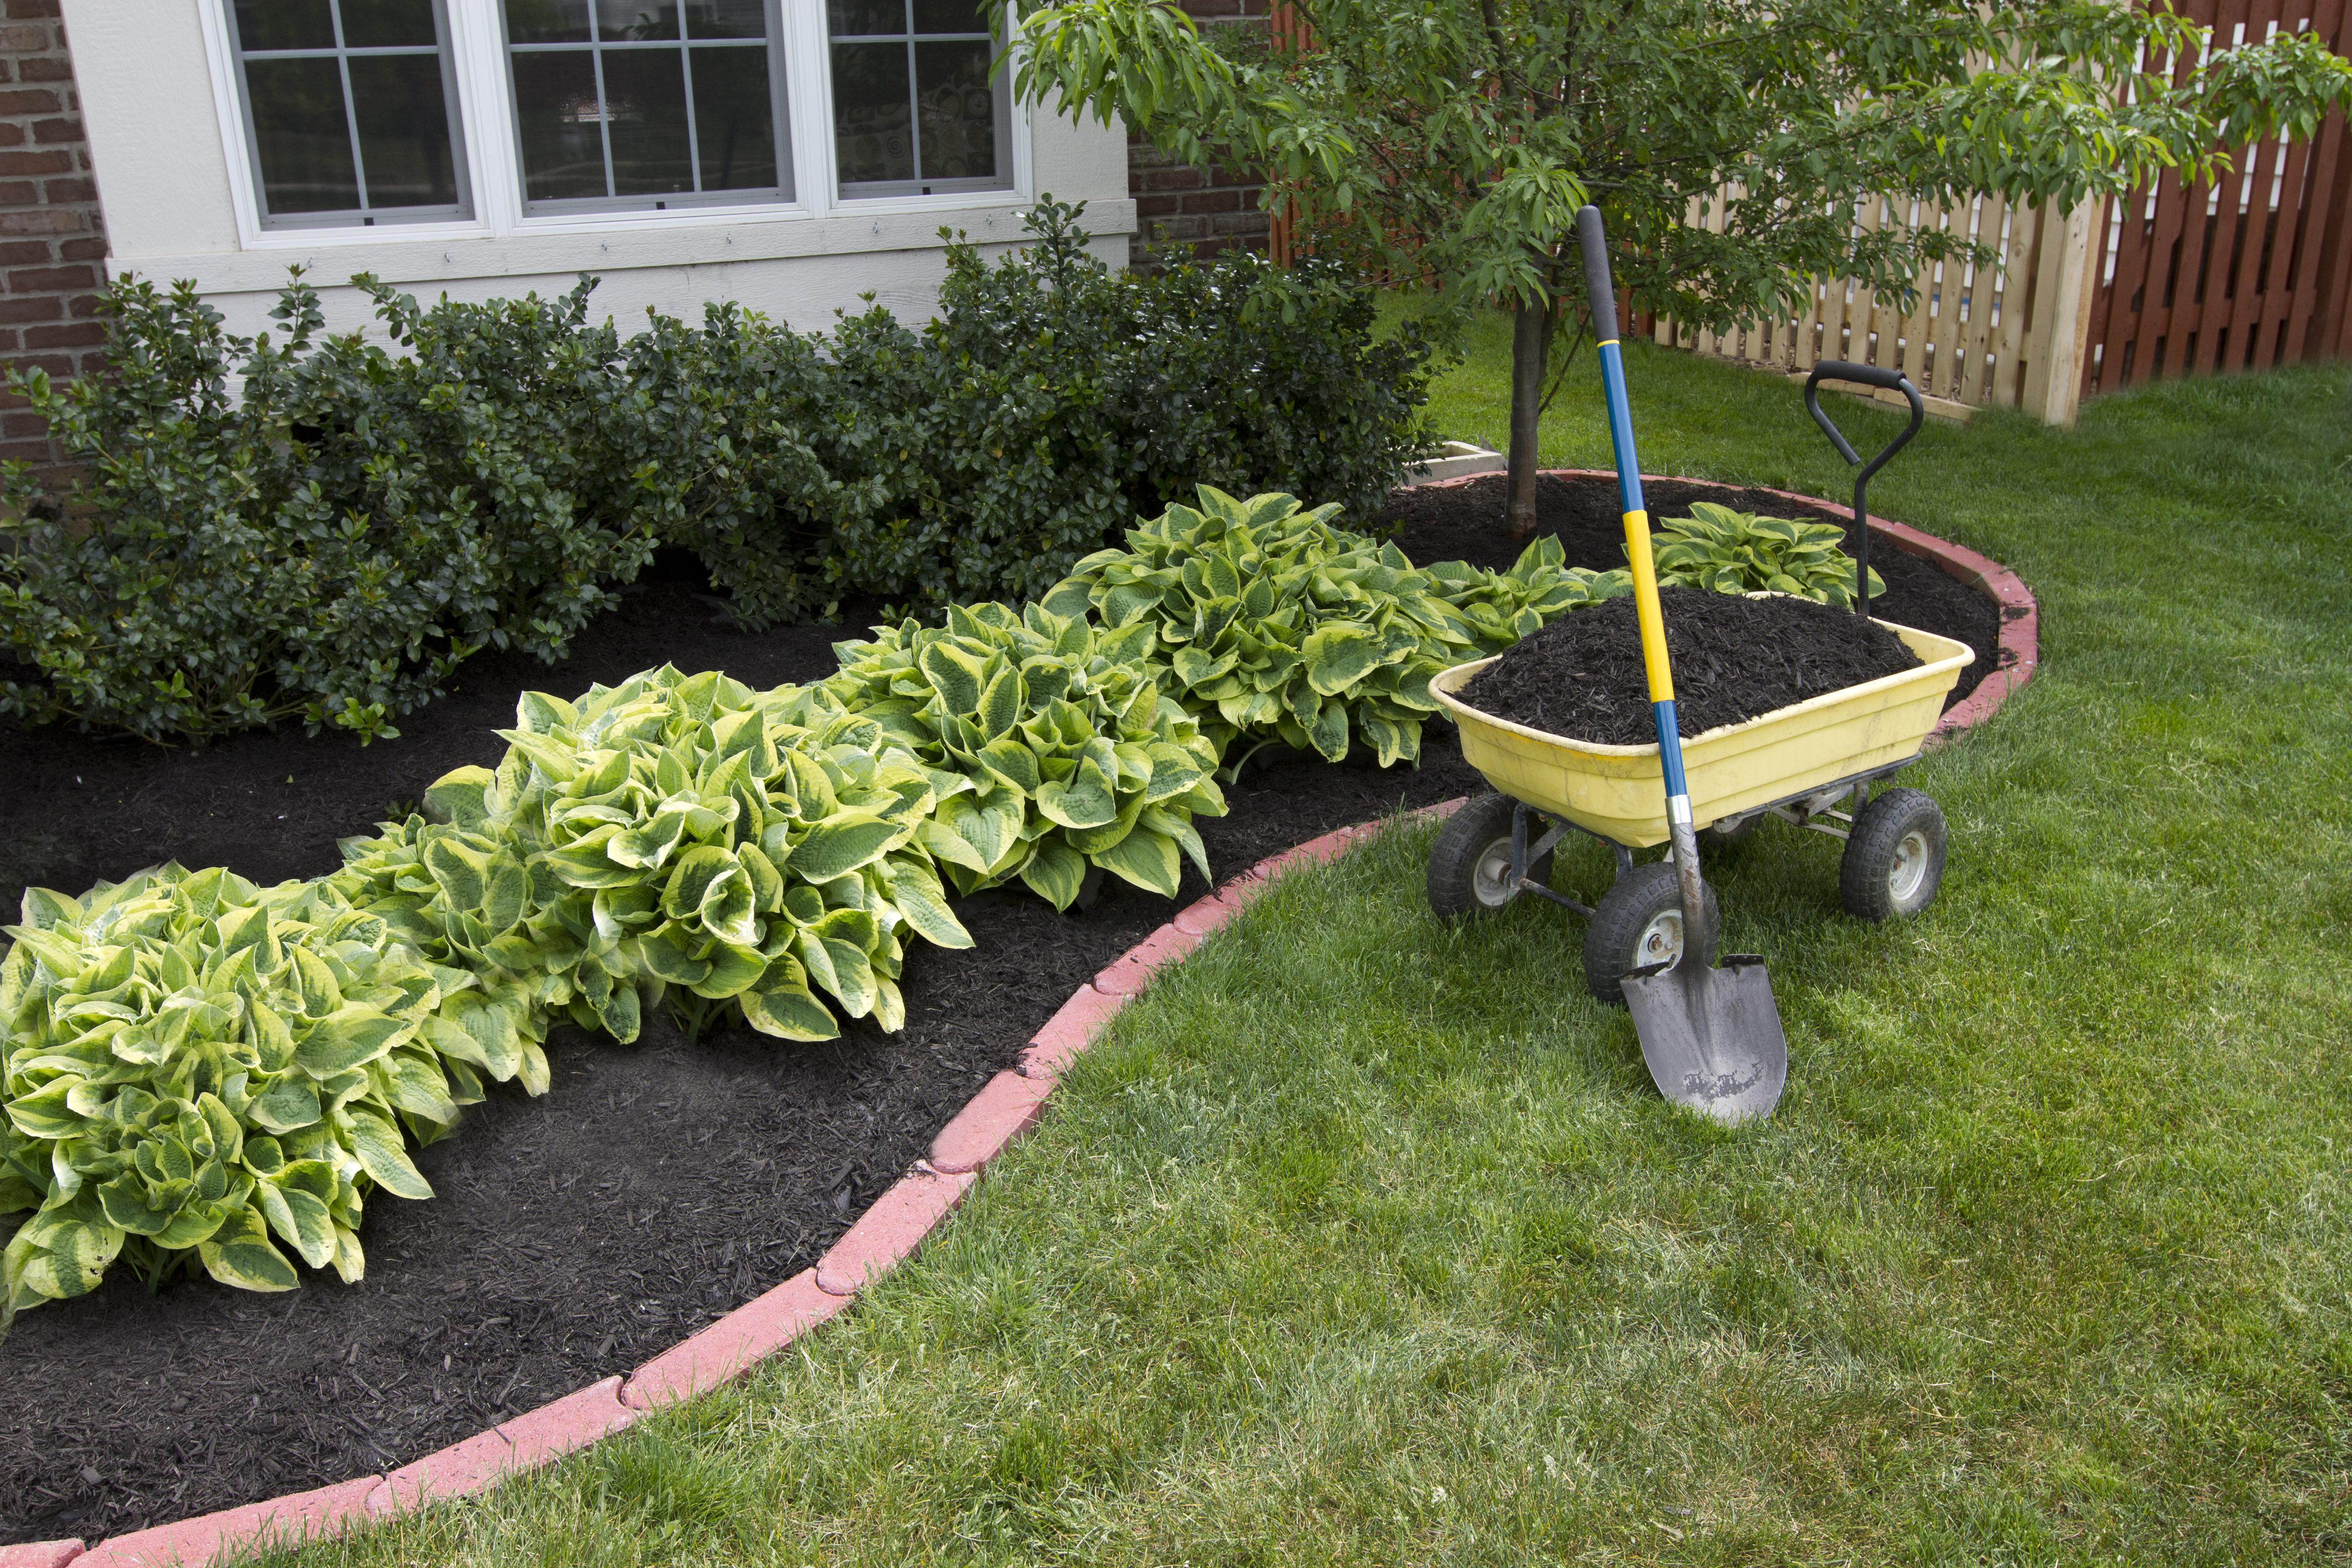 Can I Add Topsoil to My Existing Lawn? | Home Guides | SF Gate